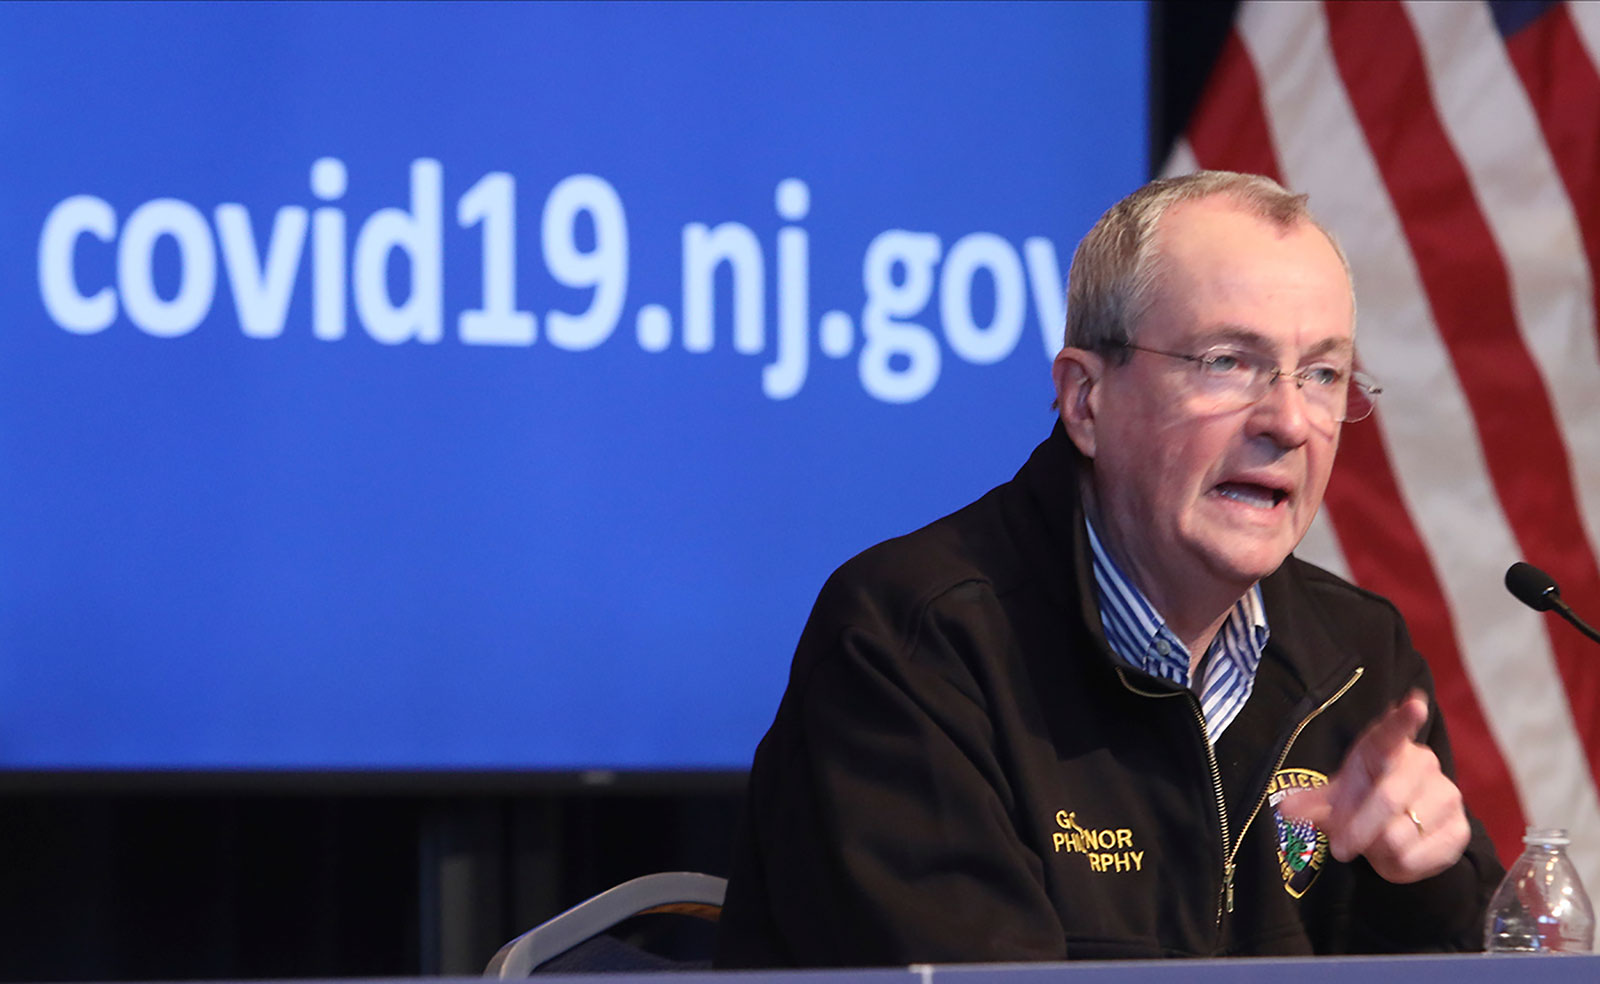 Gov. Phil Murphy holds a news conference in Trenton, New Jersey, on April 11.